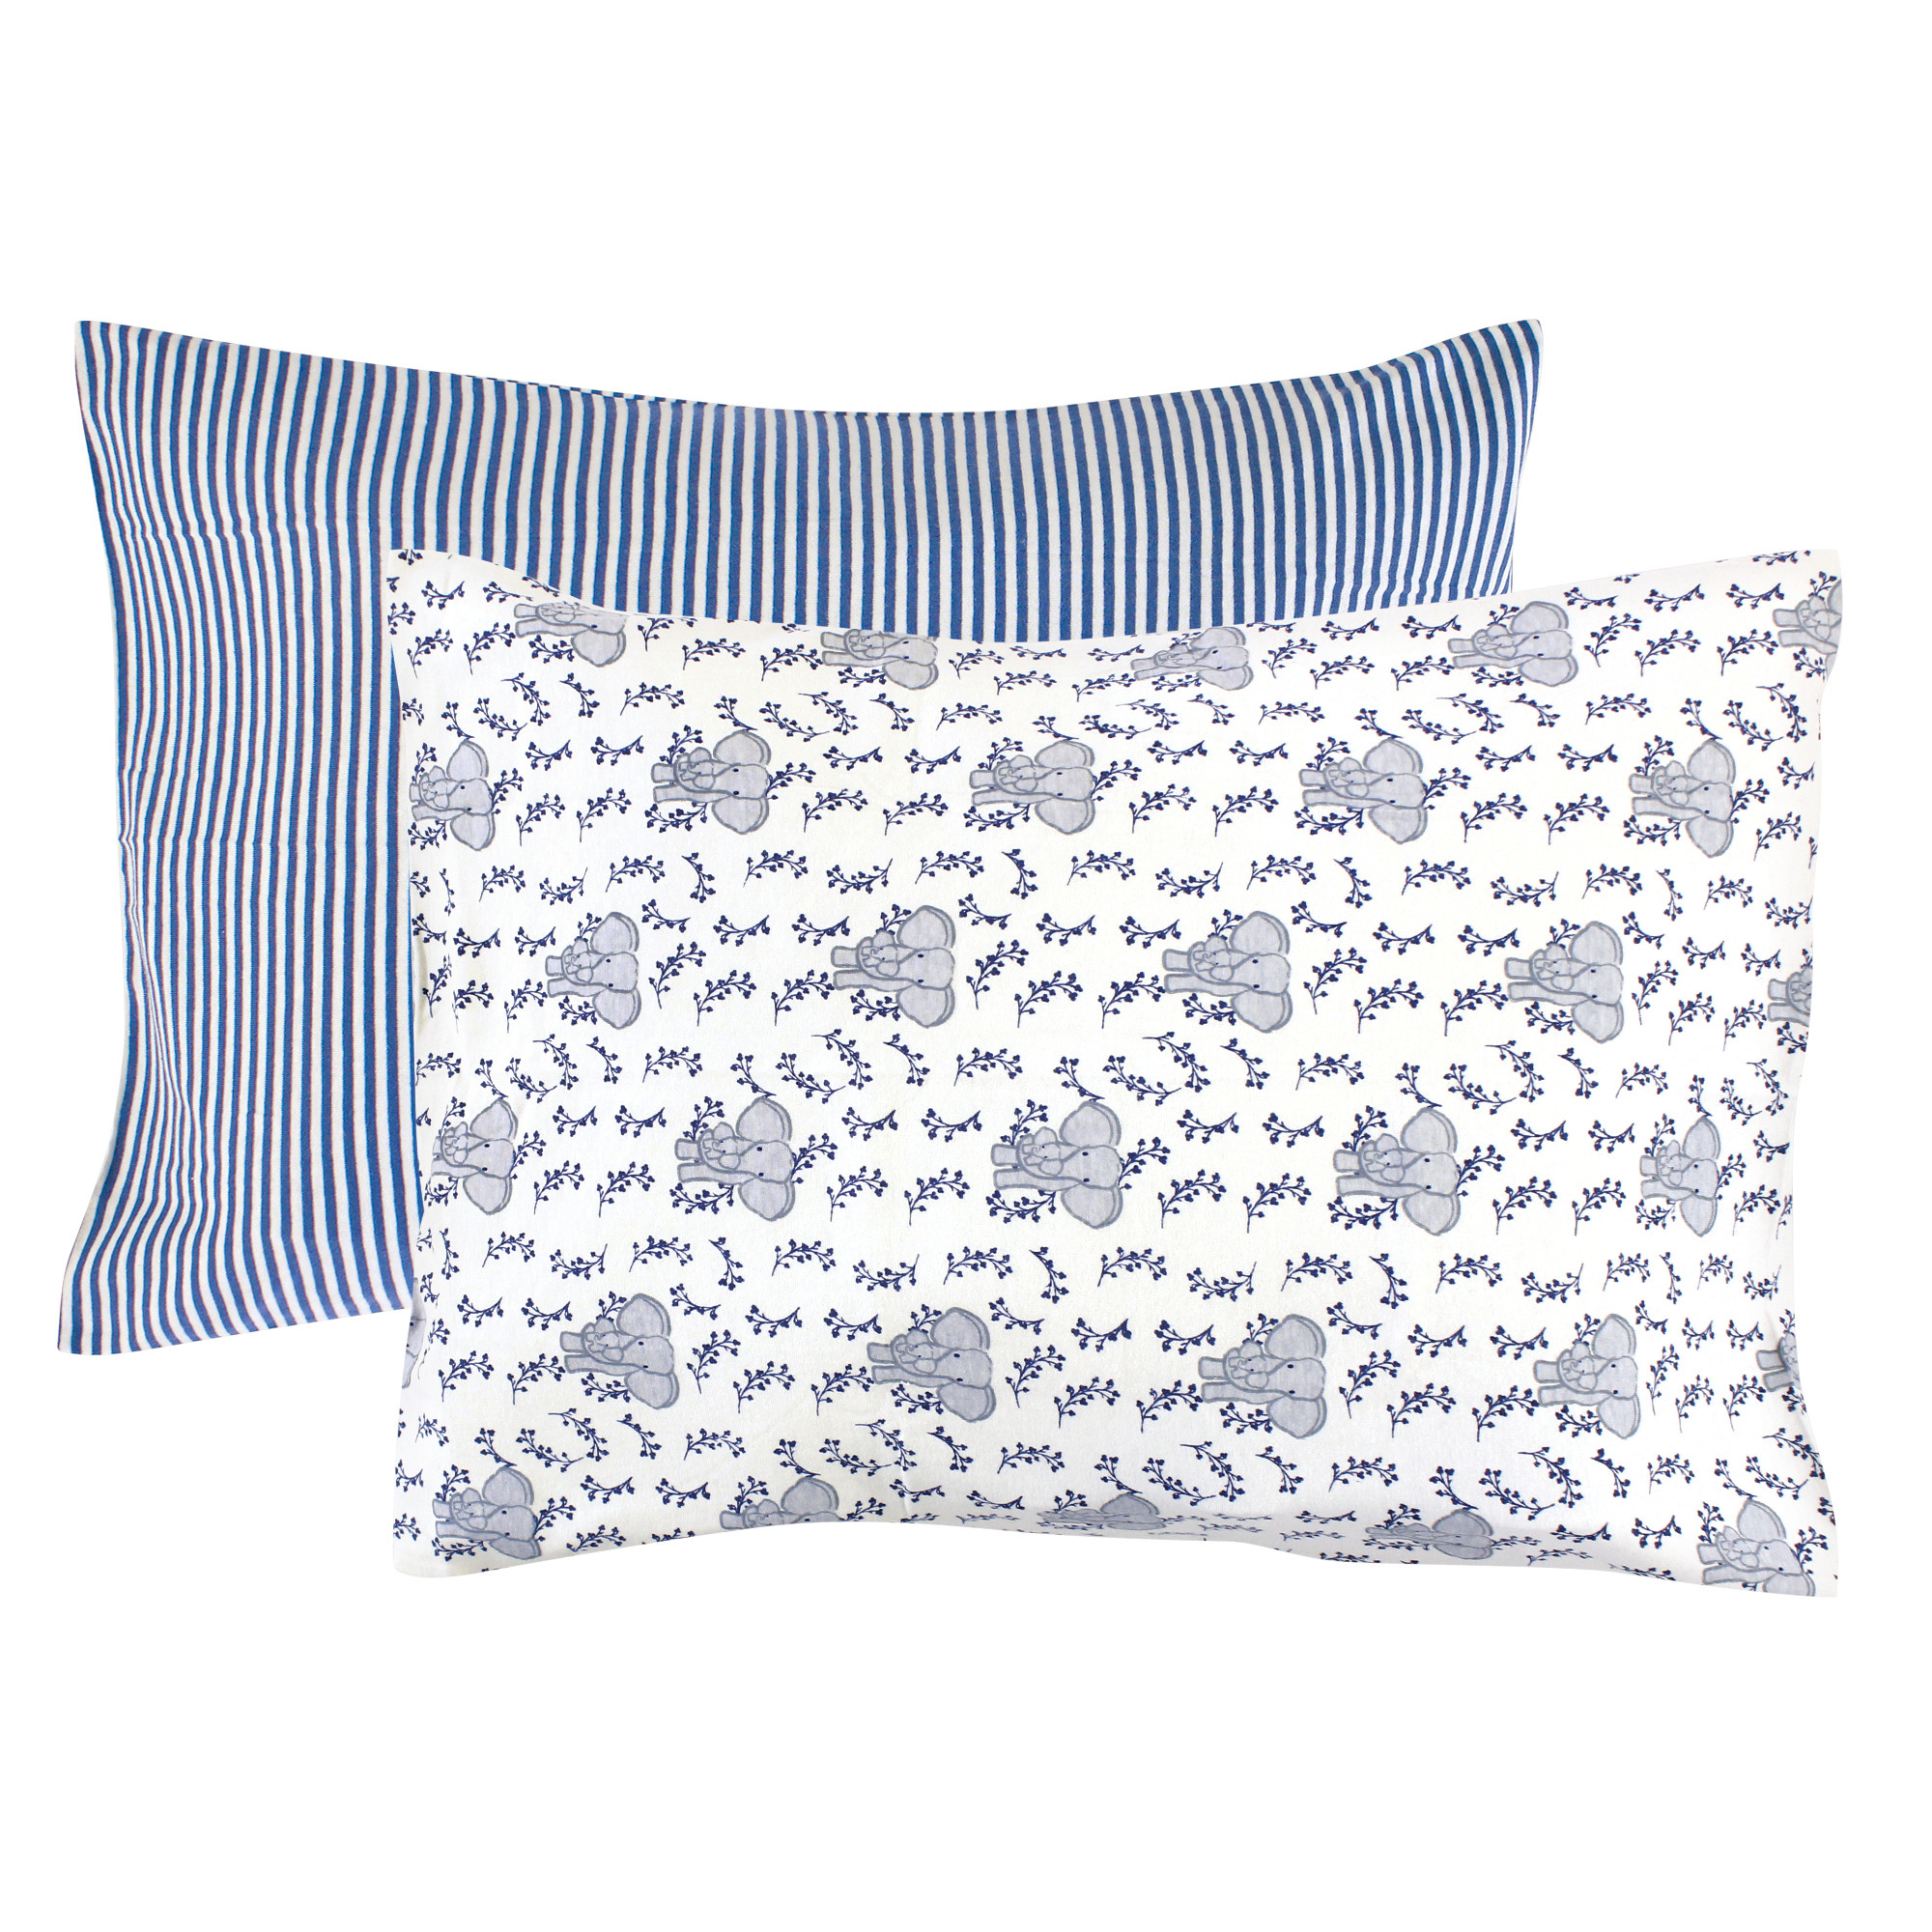 Blue Soft and Breathable Travel Pillow Cases with Envelope Closure for Boys and Girls H HOUSEHOLD Organic Cotton Jersey Knit Toddler Pillowcases 13 x 18 2 Pack